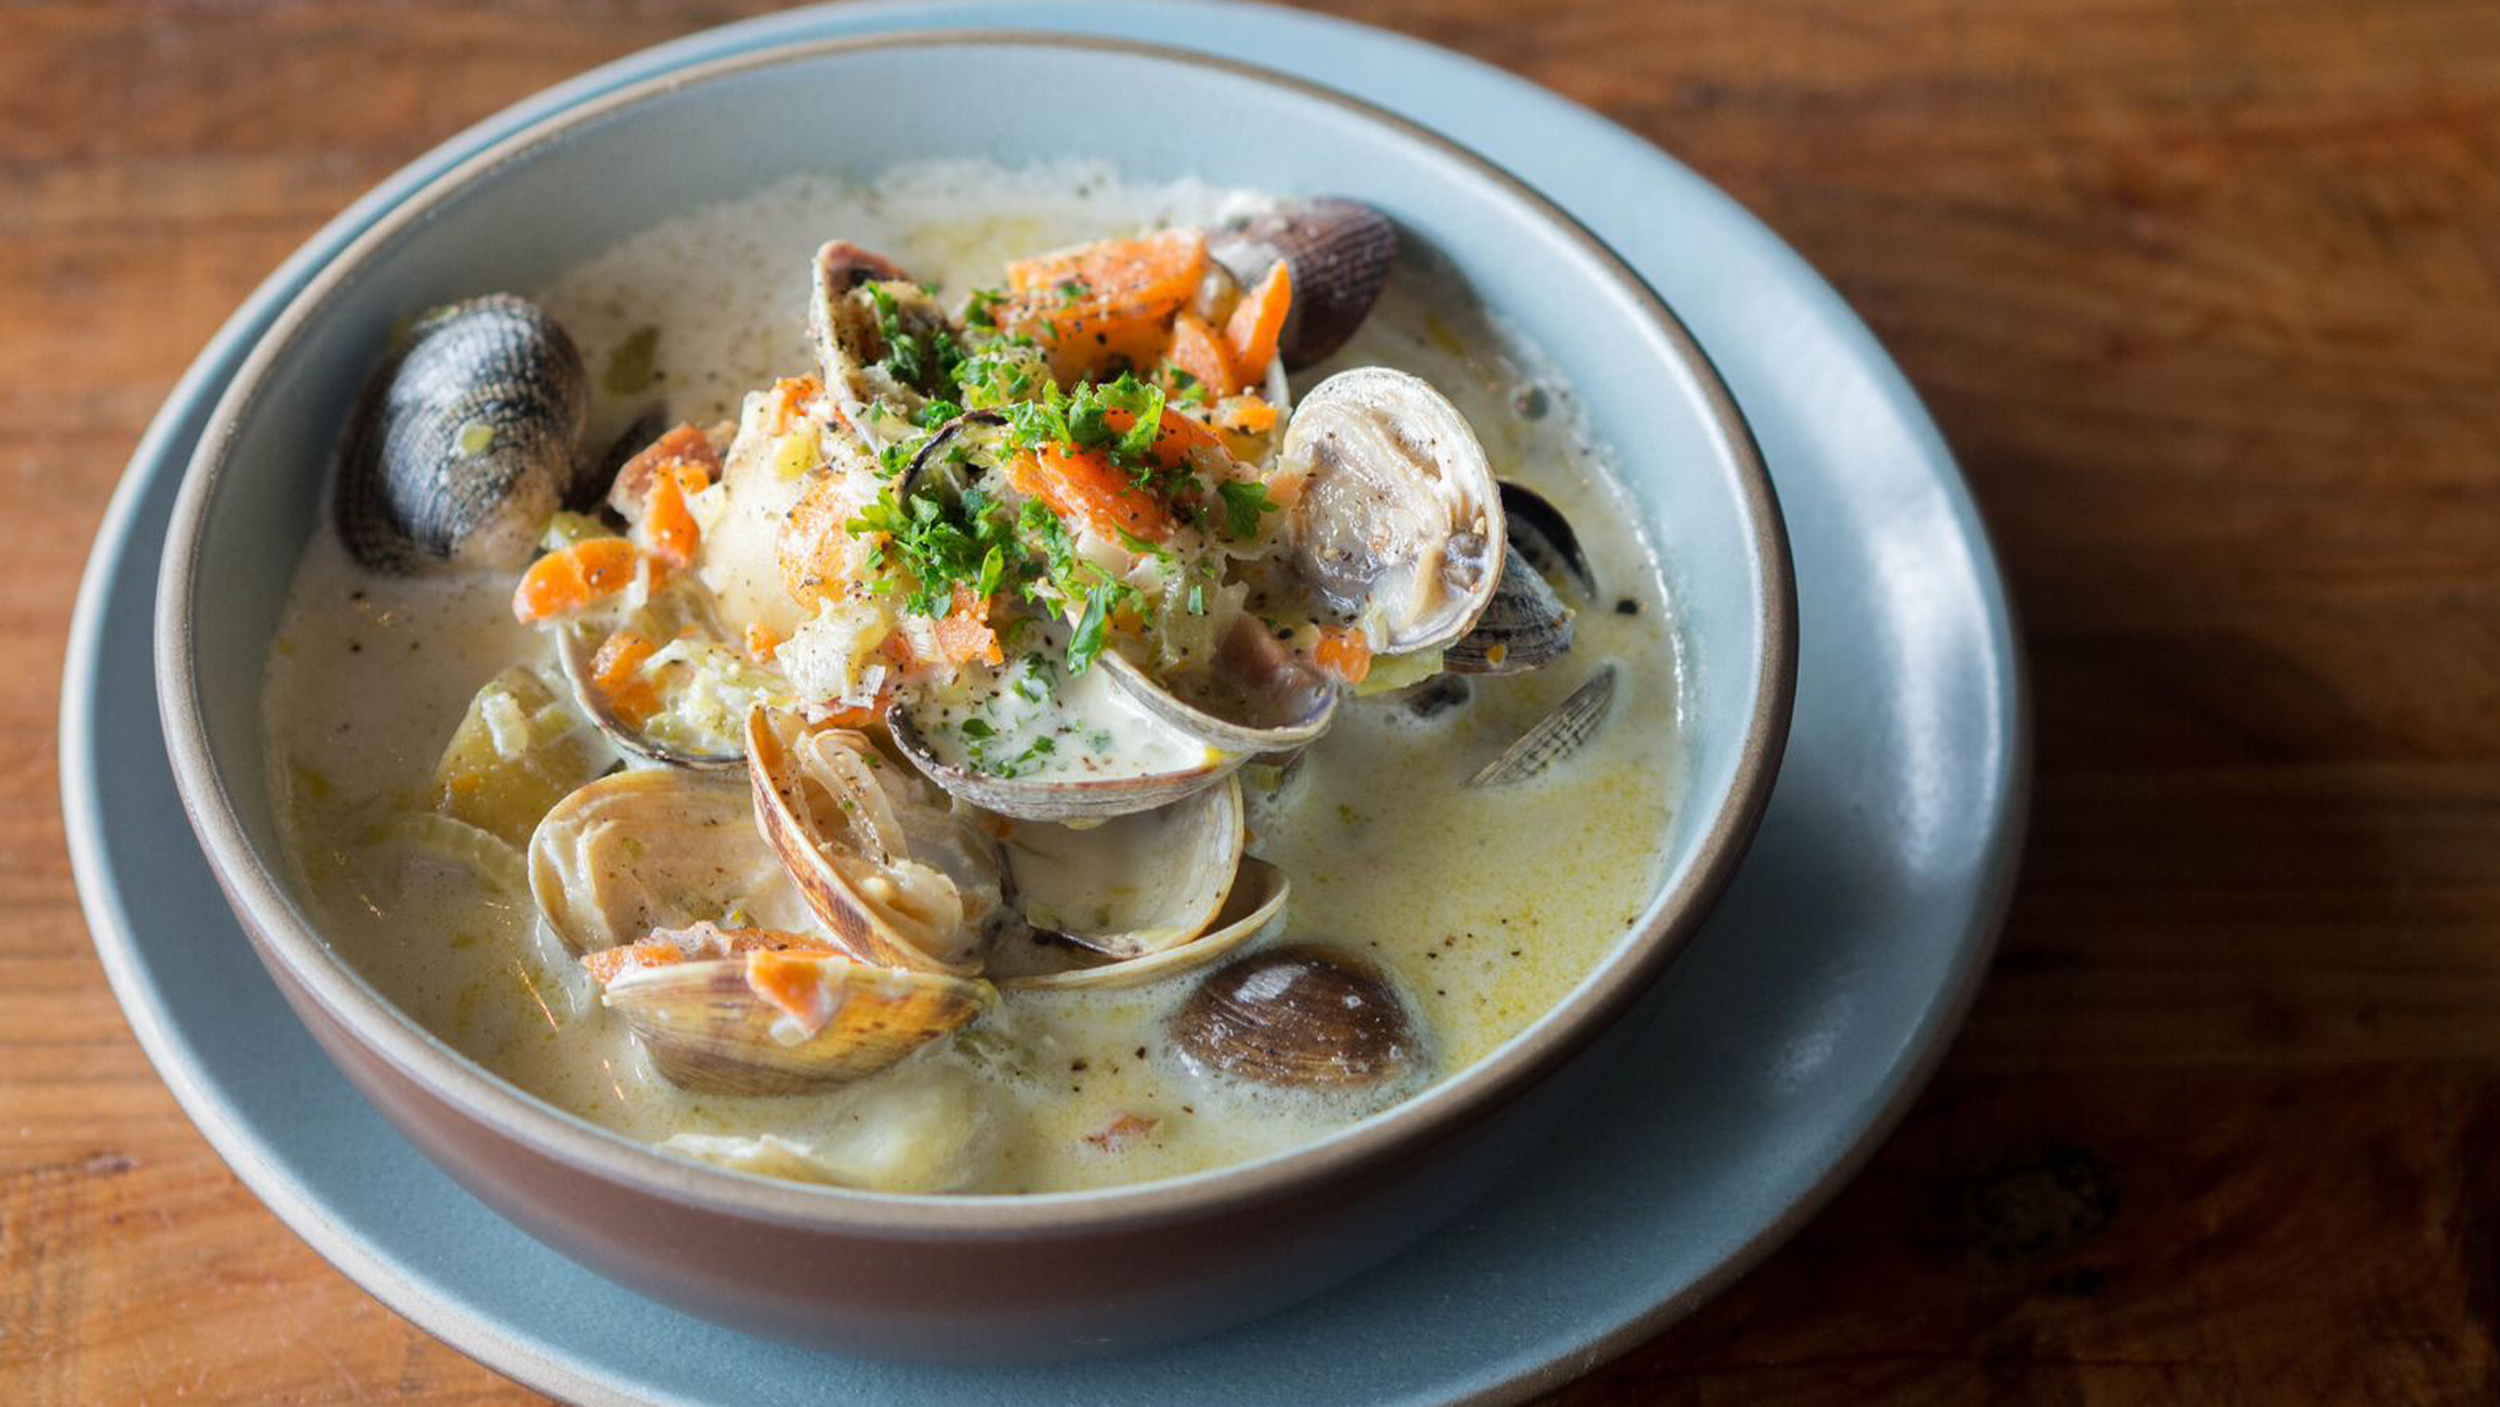 The best clam chowder recipe, inspired by San Francisco - TODAY.com